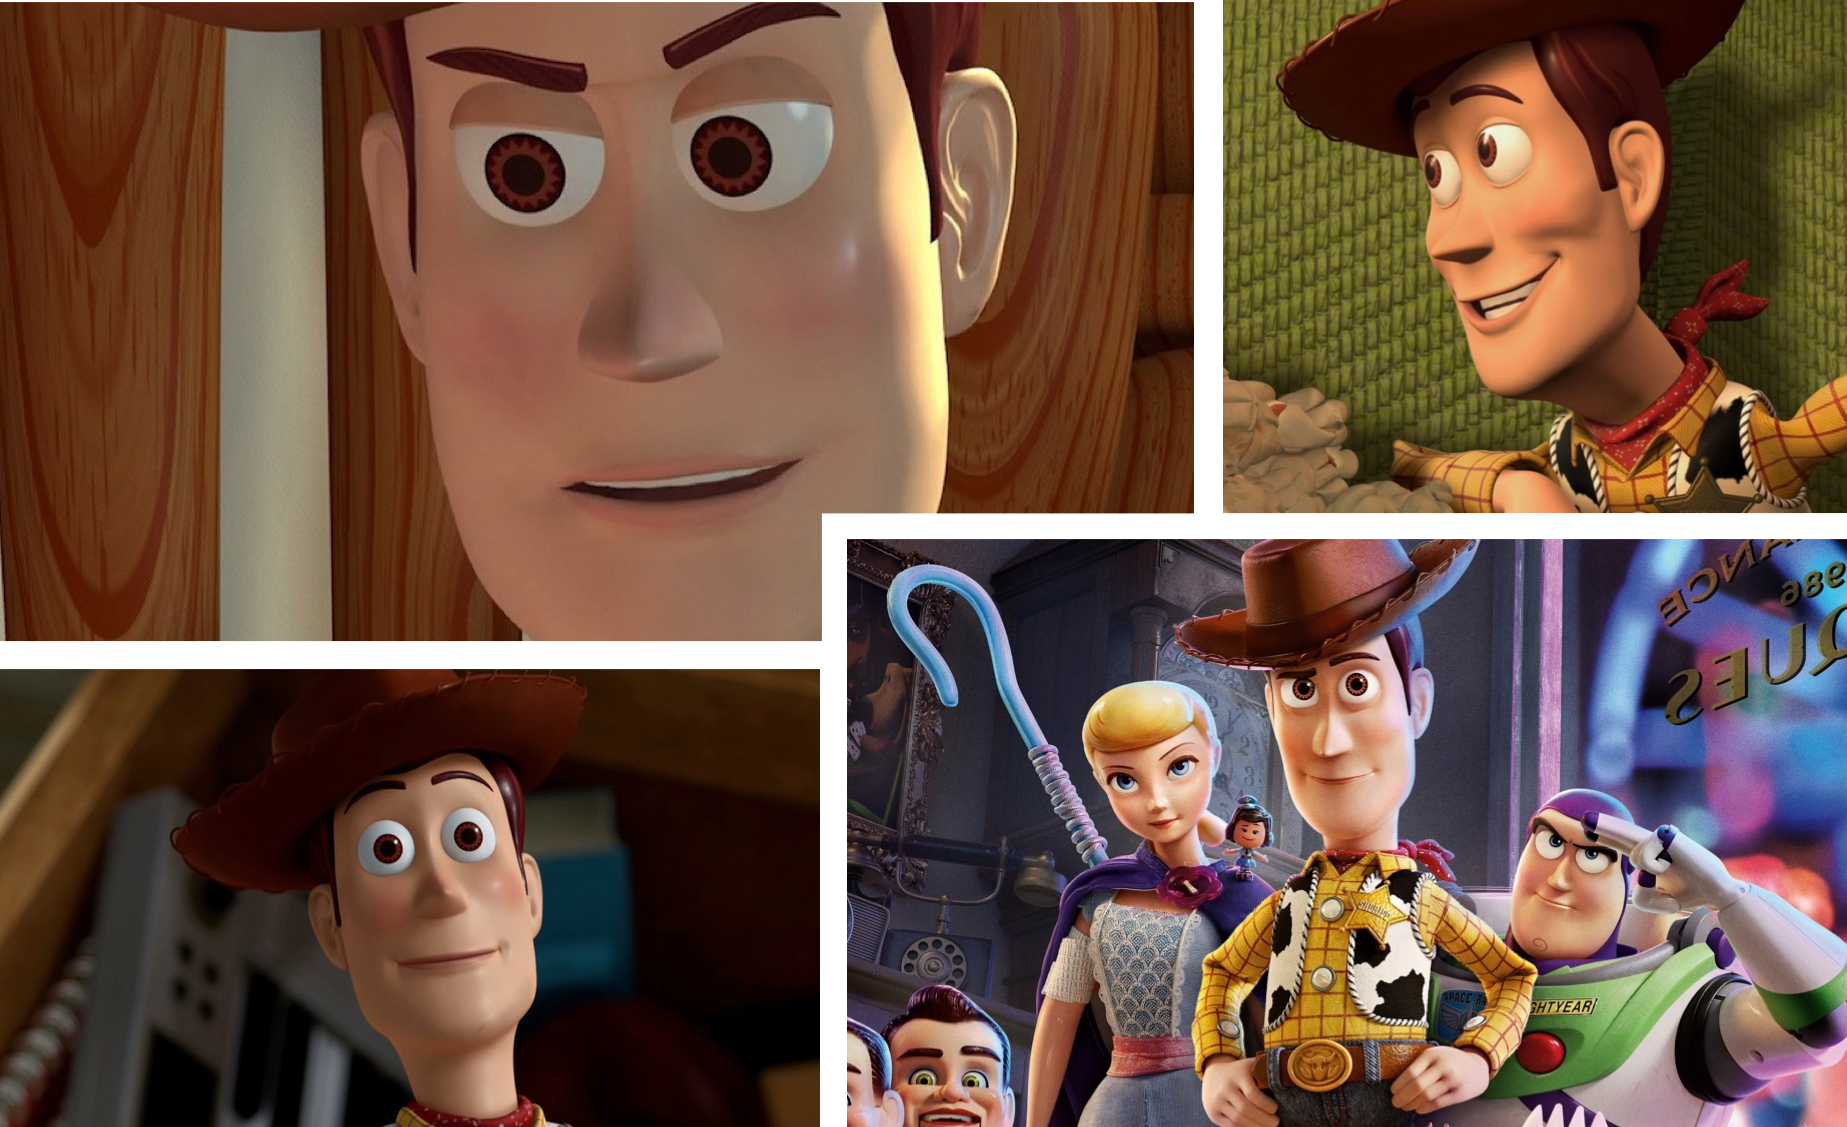 Woody - how has he changed so little aesthetically when he's grown so much as a toy?